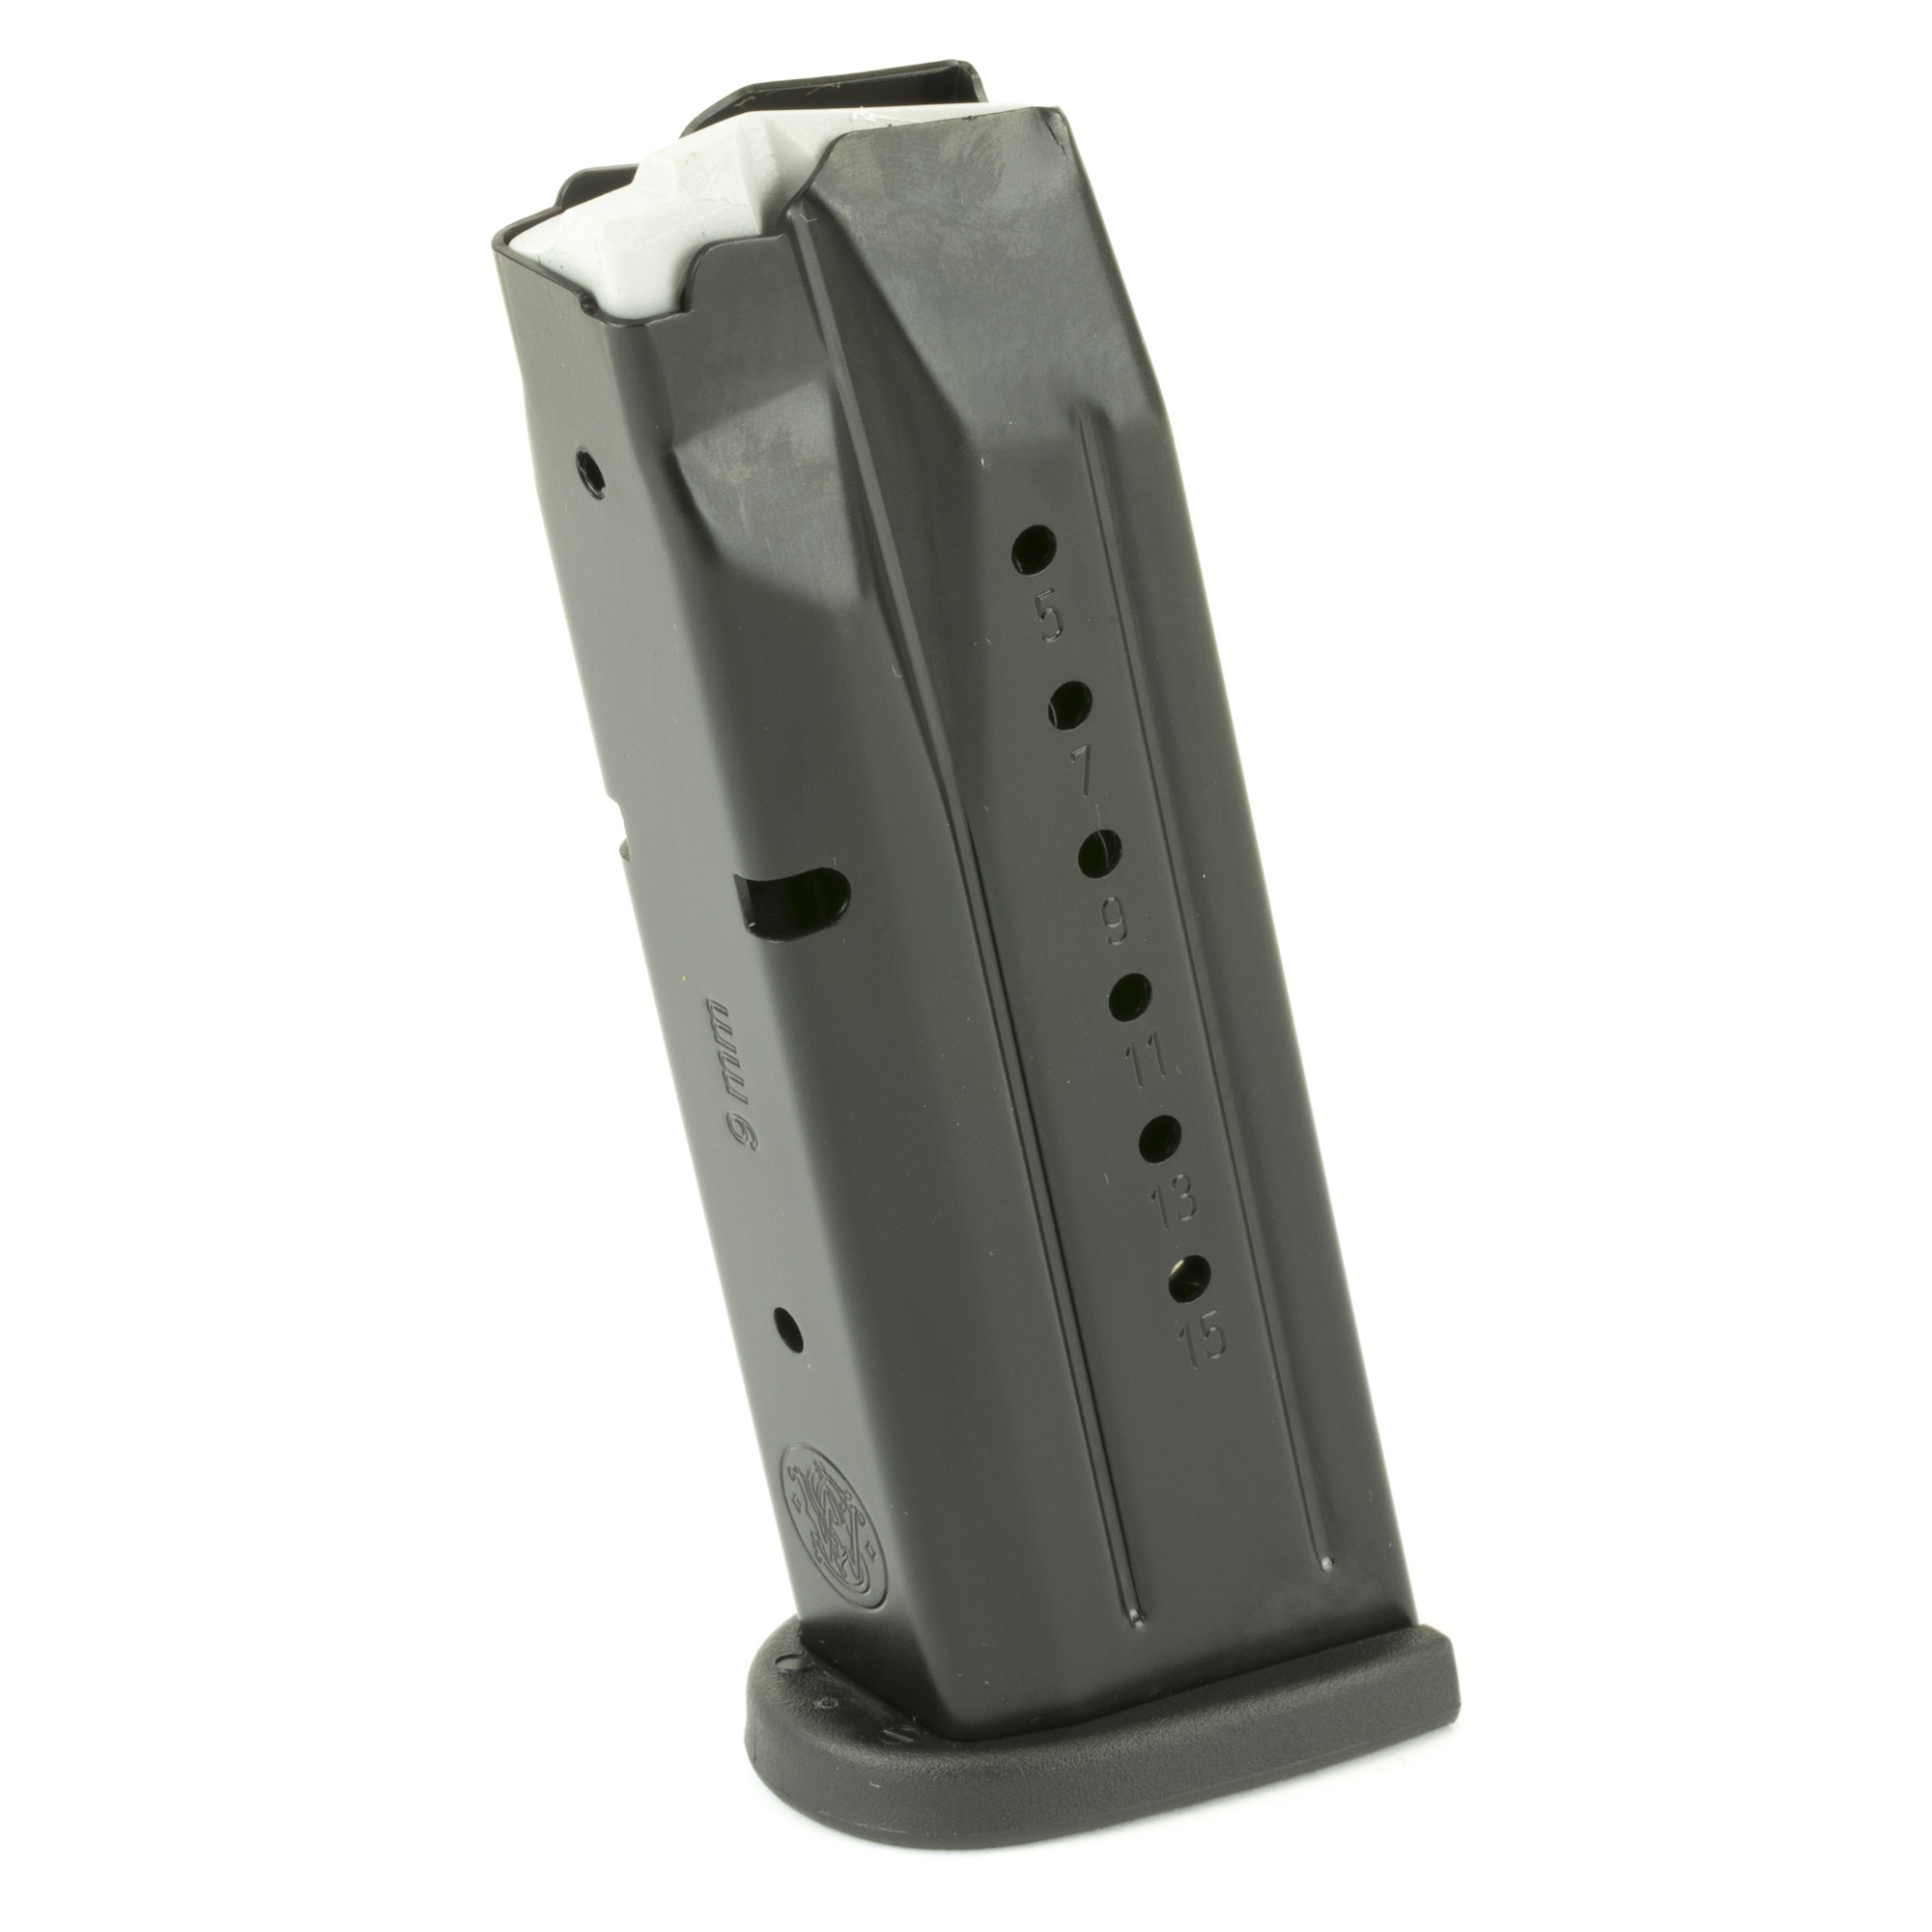 Smith & Wesson M&P M2.0 Compact 9mm 15RD magazine